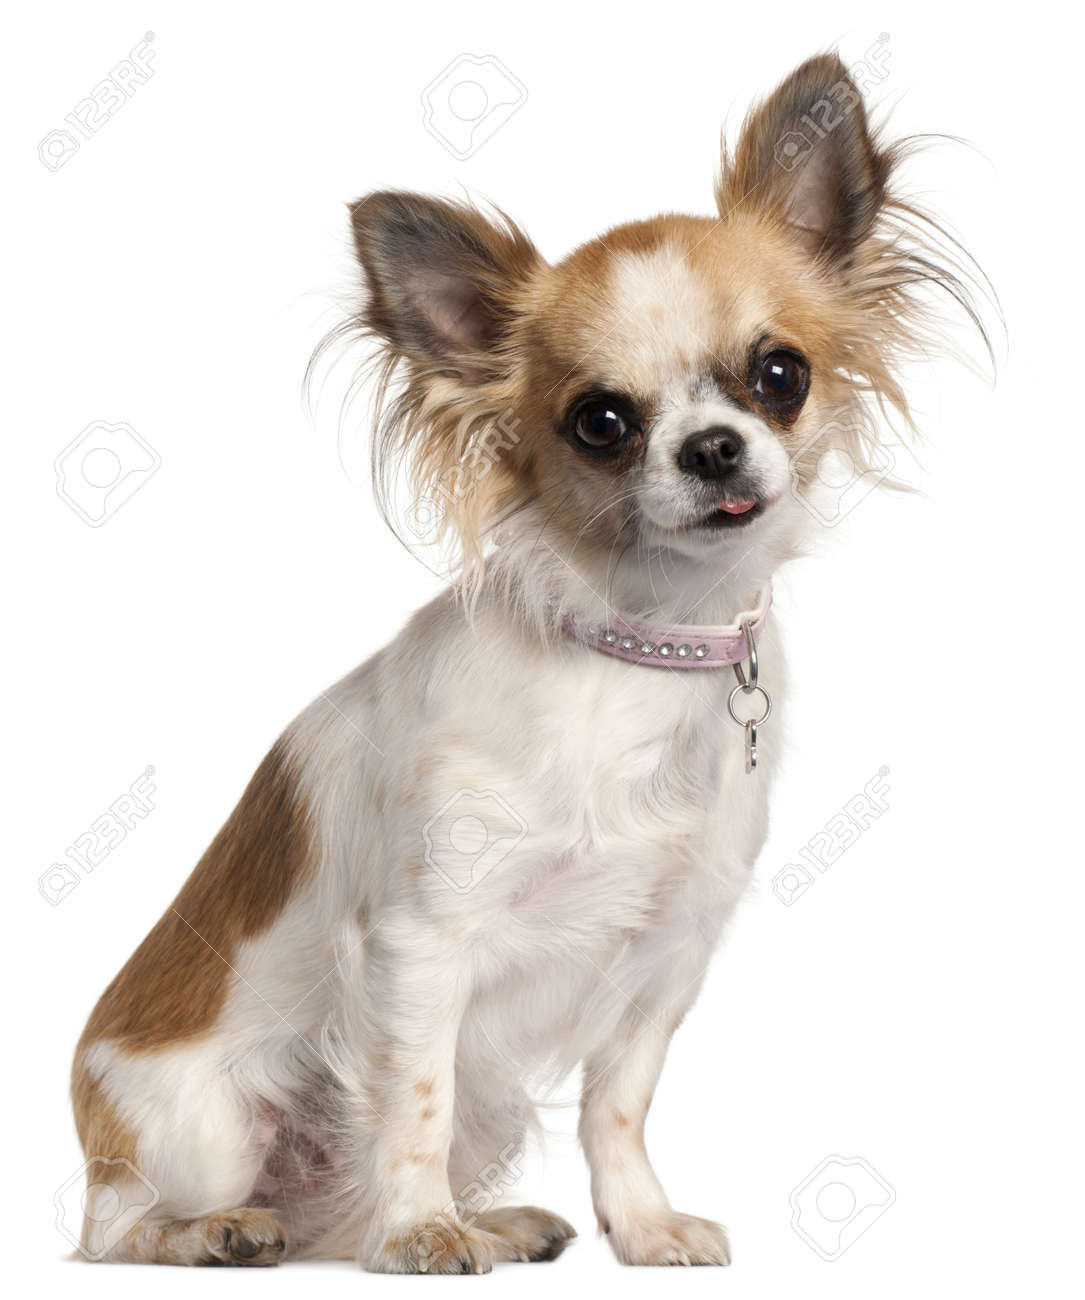 Chihuahua, 18 months old, sitting in front of white background Stock Photo - 9563602